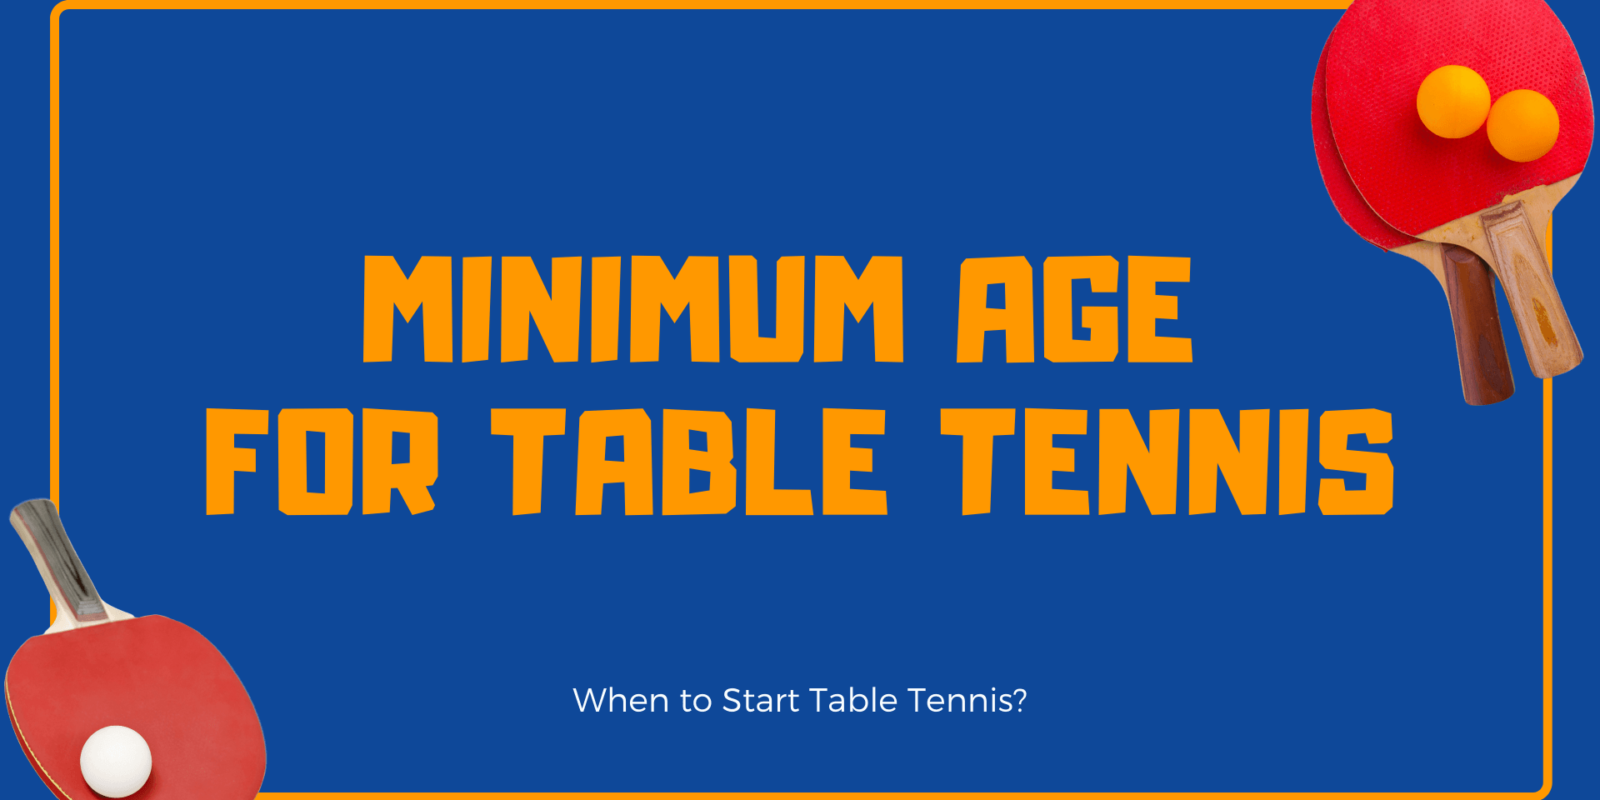 Minimum Age For Table Tennis